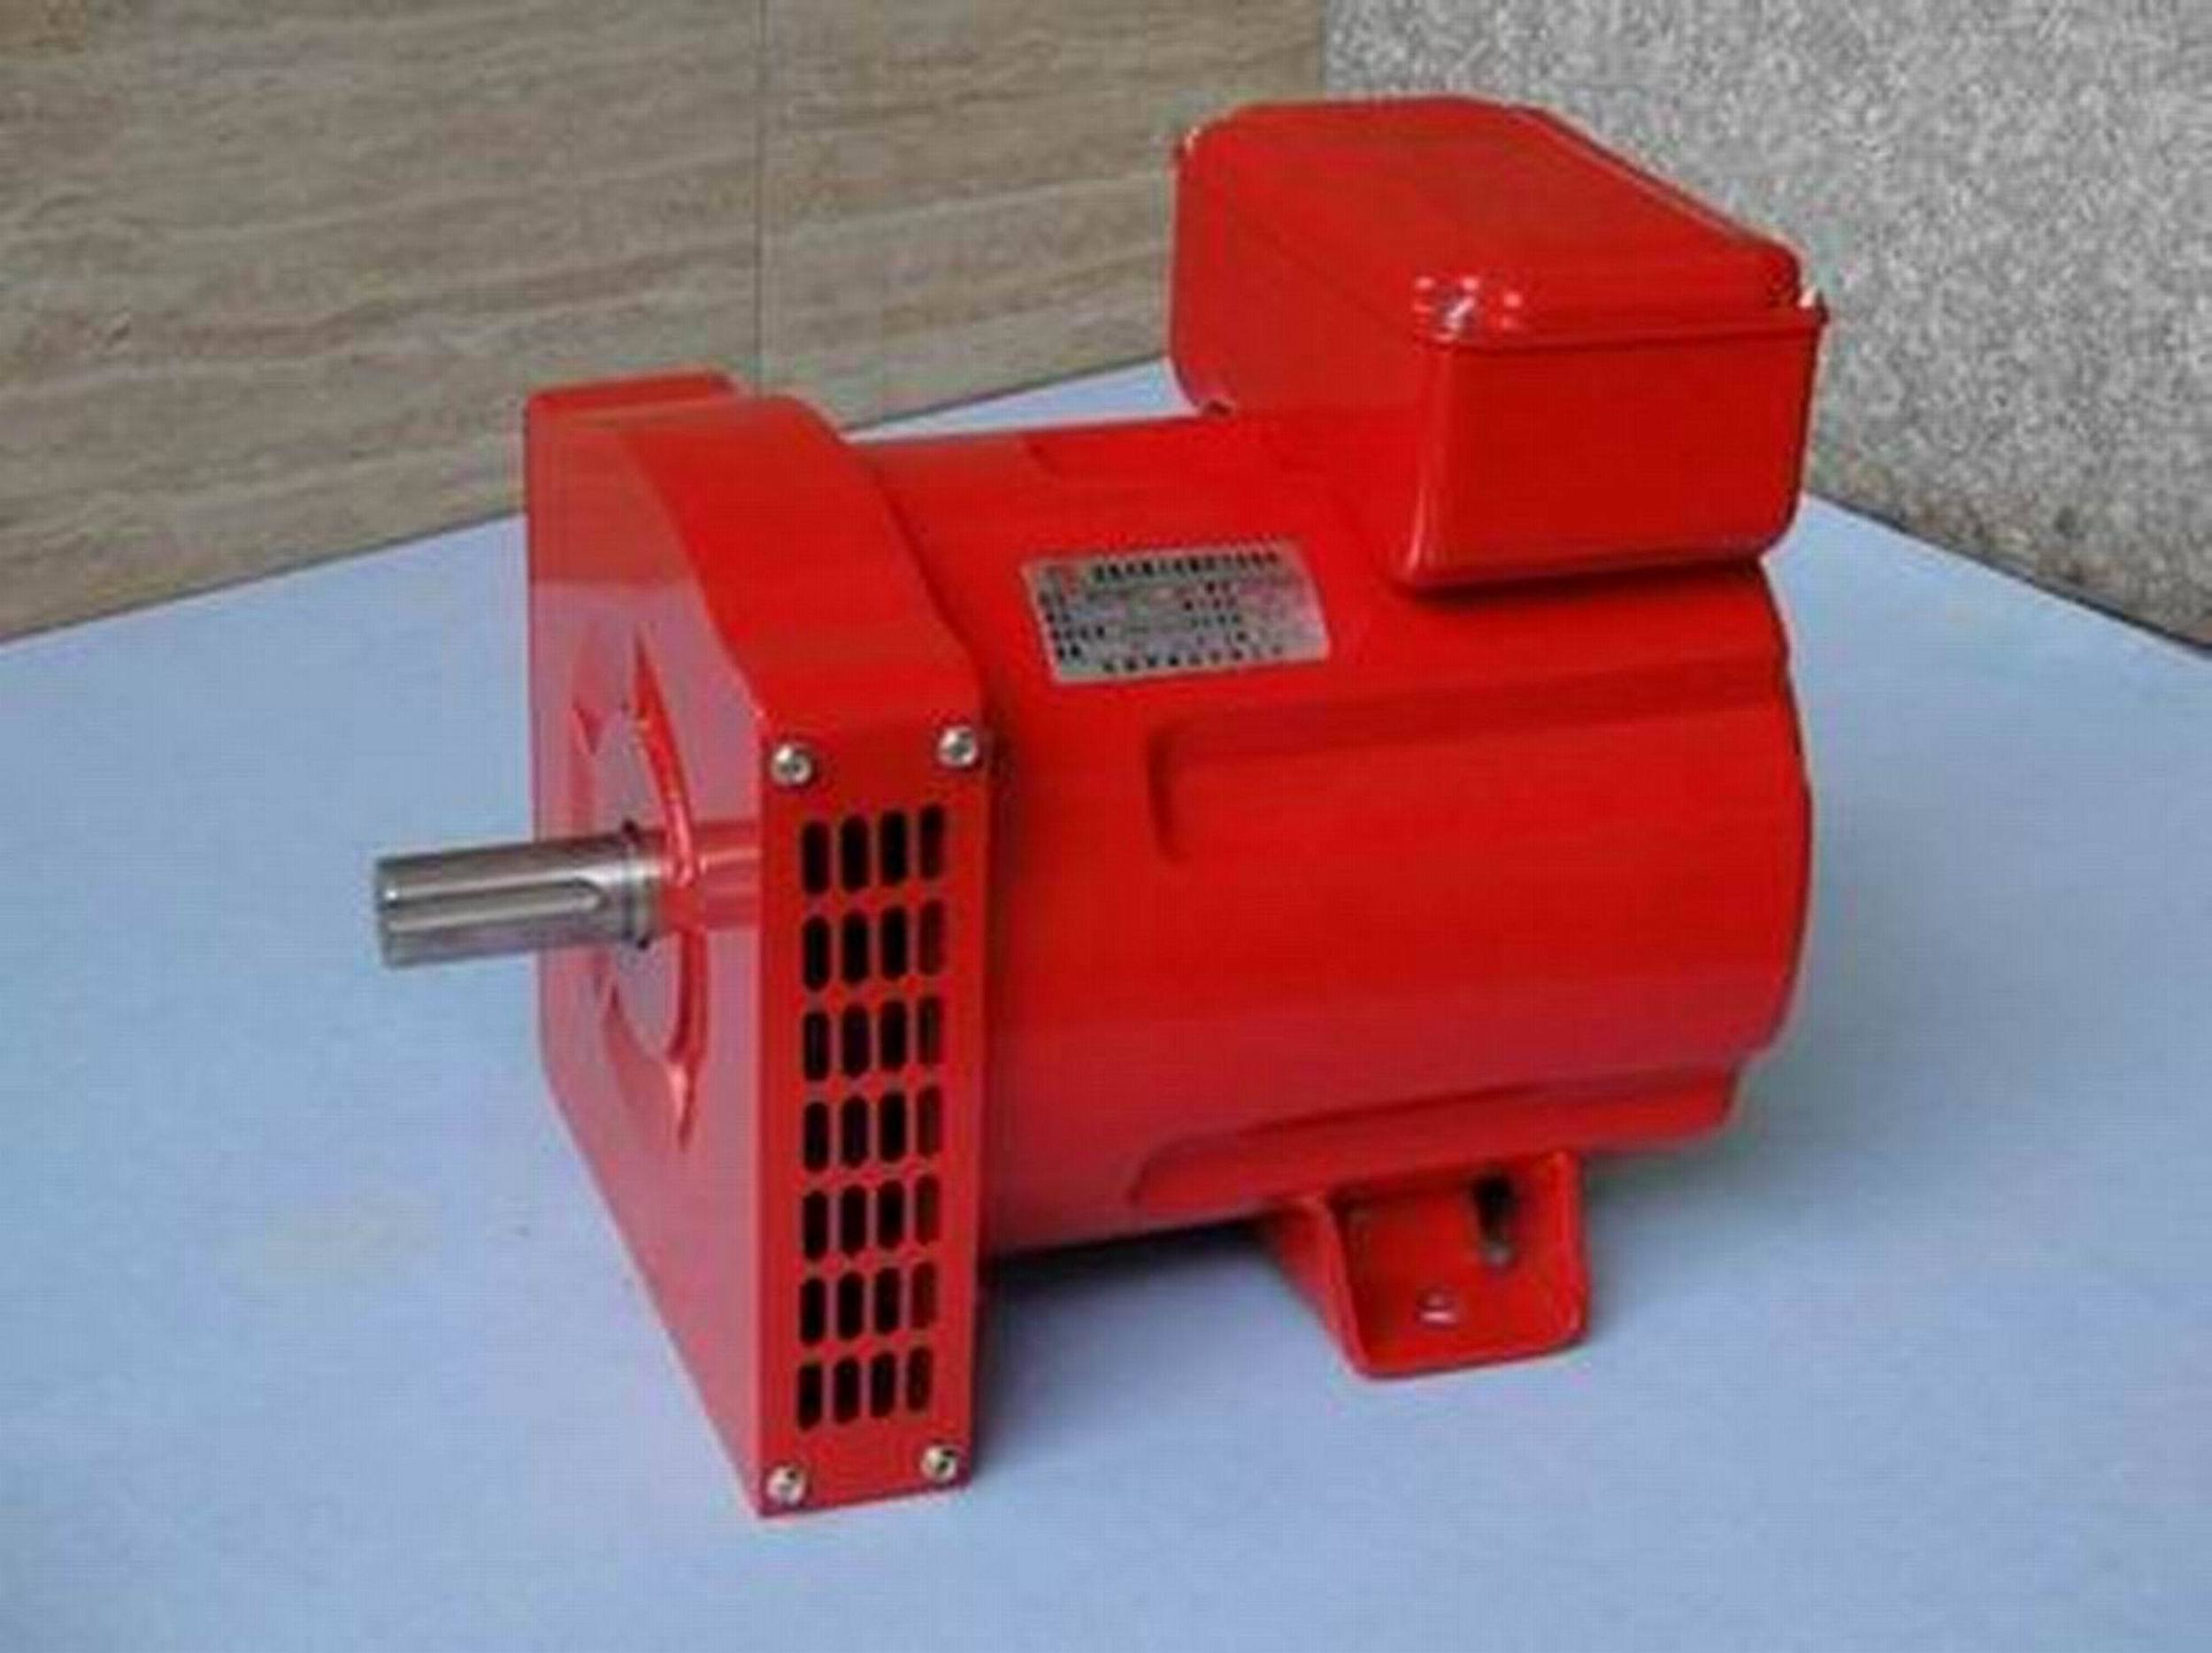 Ksfd Single Phase Brushless a. C. Synchronous Alternator